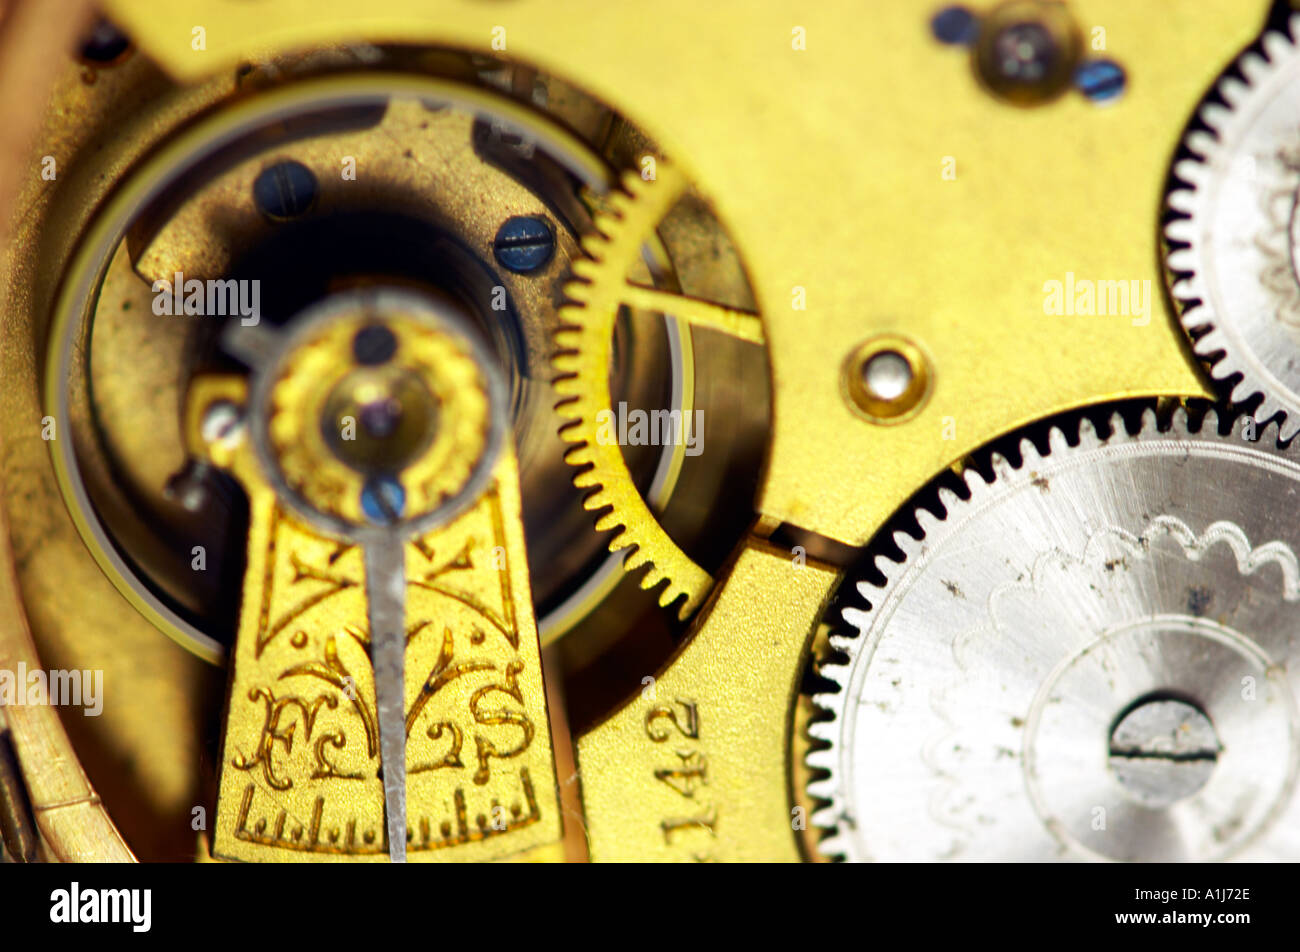 Close up detail of an old pocket watch - Stock Image